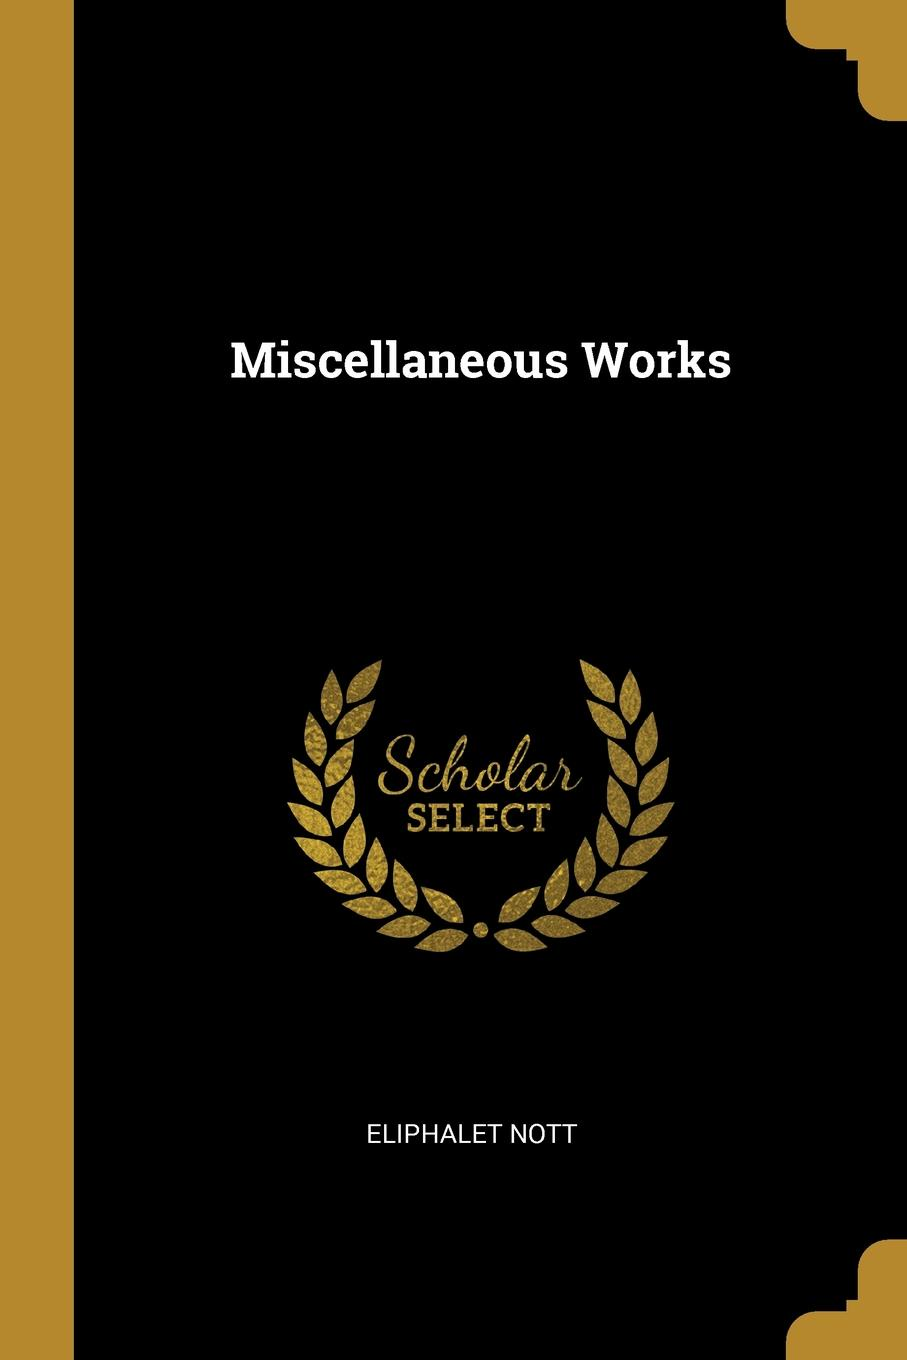 Miscellaneous Works